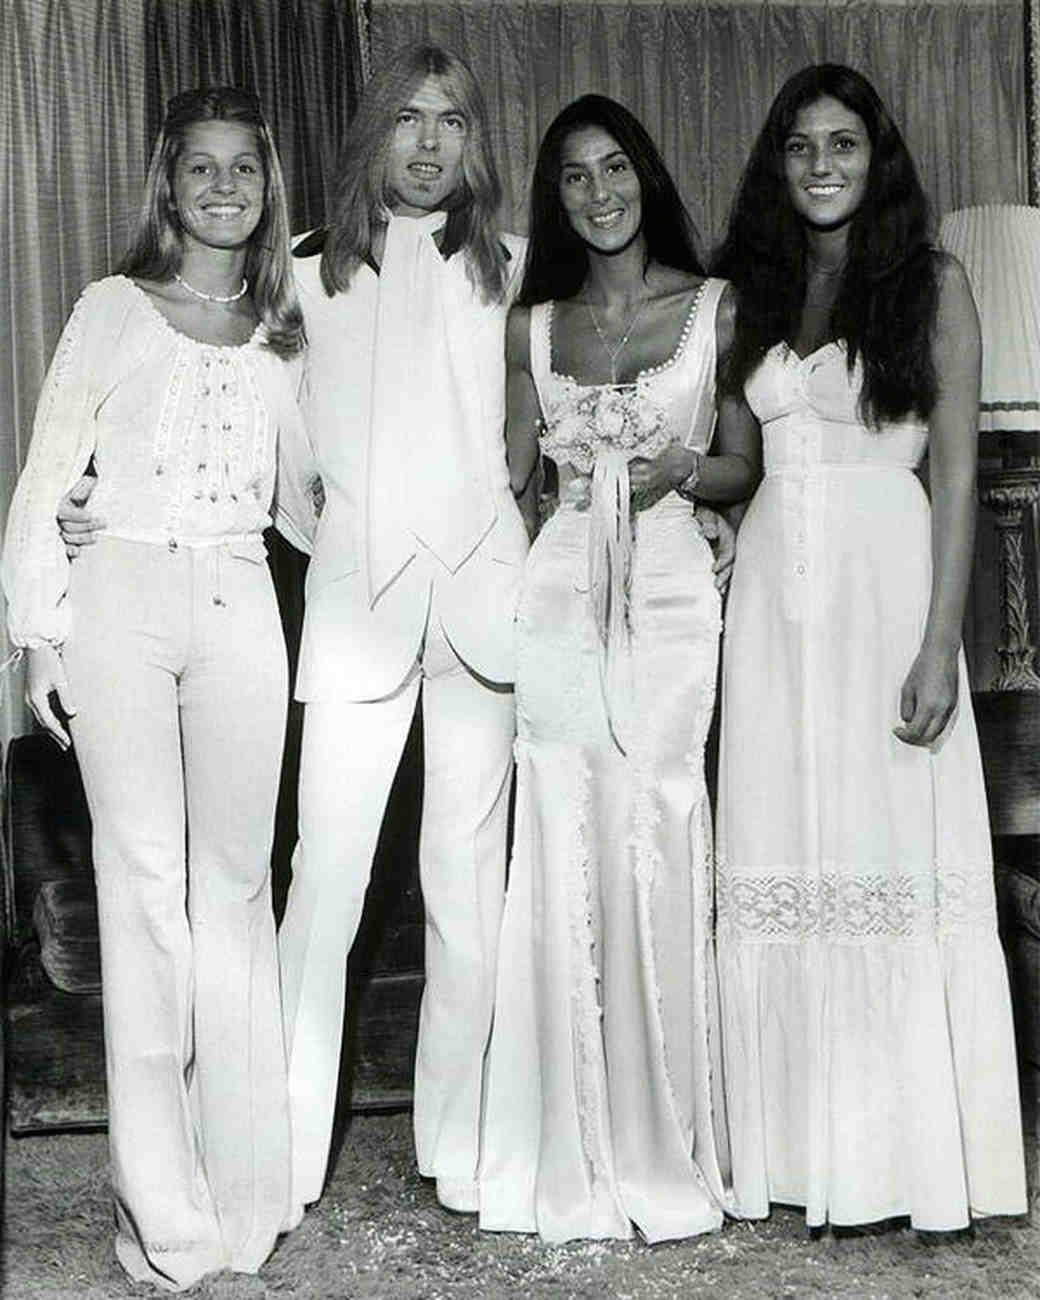 Cher and Gregg Allman Wedding Photo